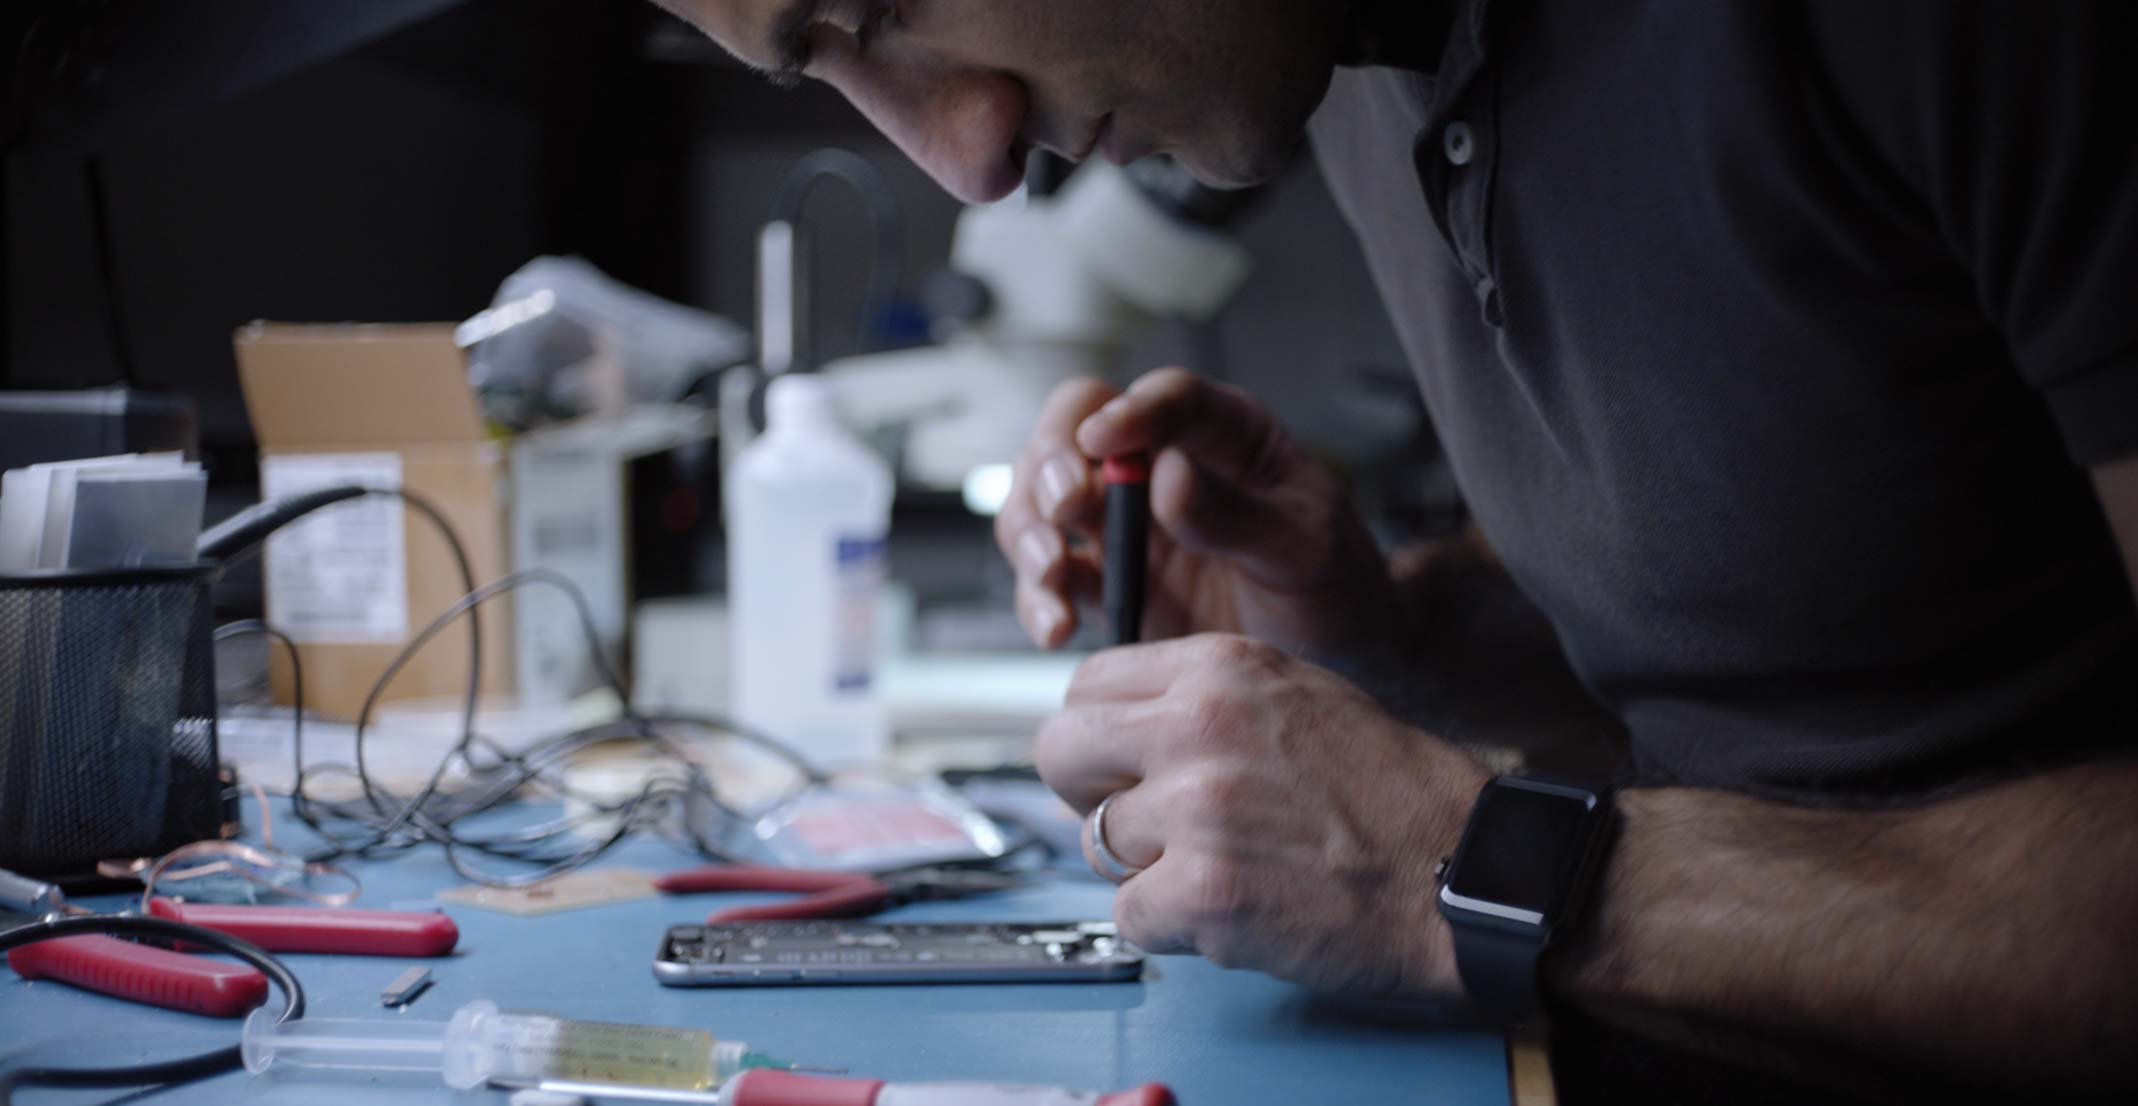 Ehsan, an engineering manager for Apple's Sensing Product Design group, works on an iPhone in an engineering lab.